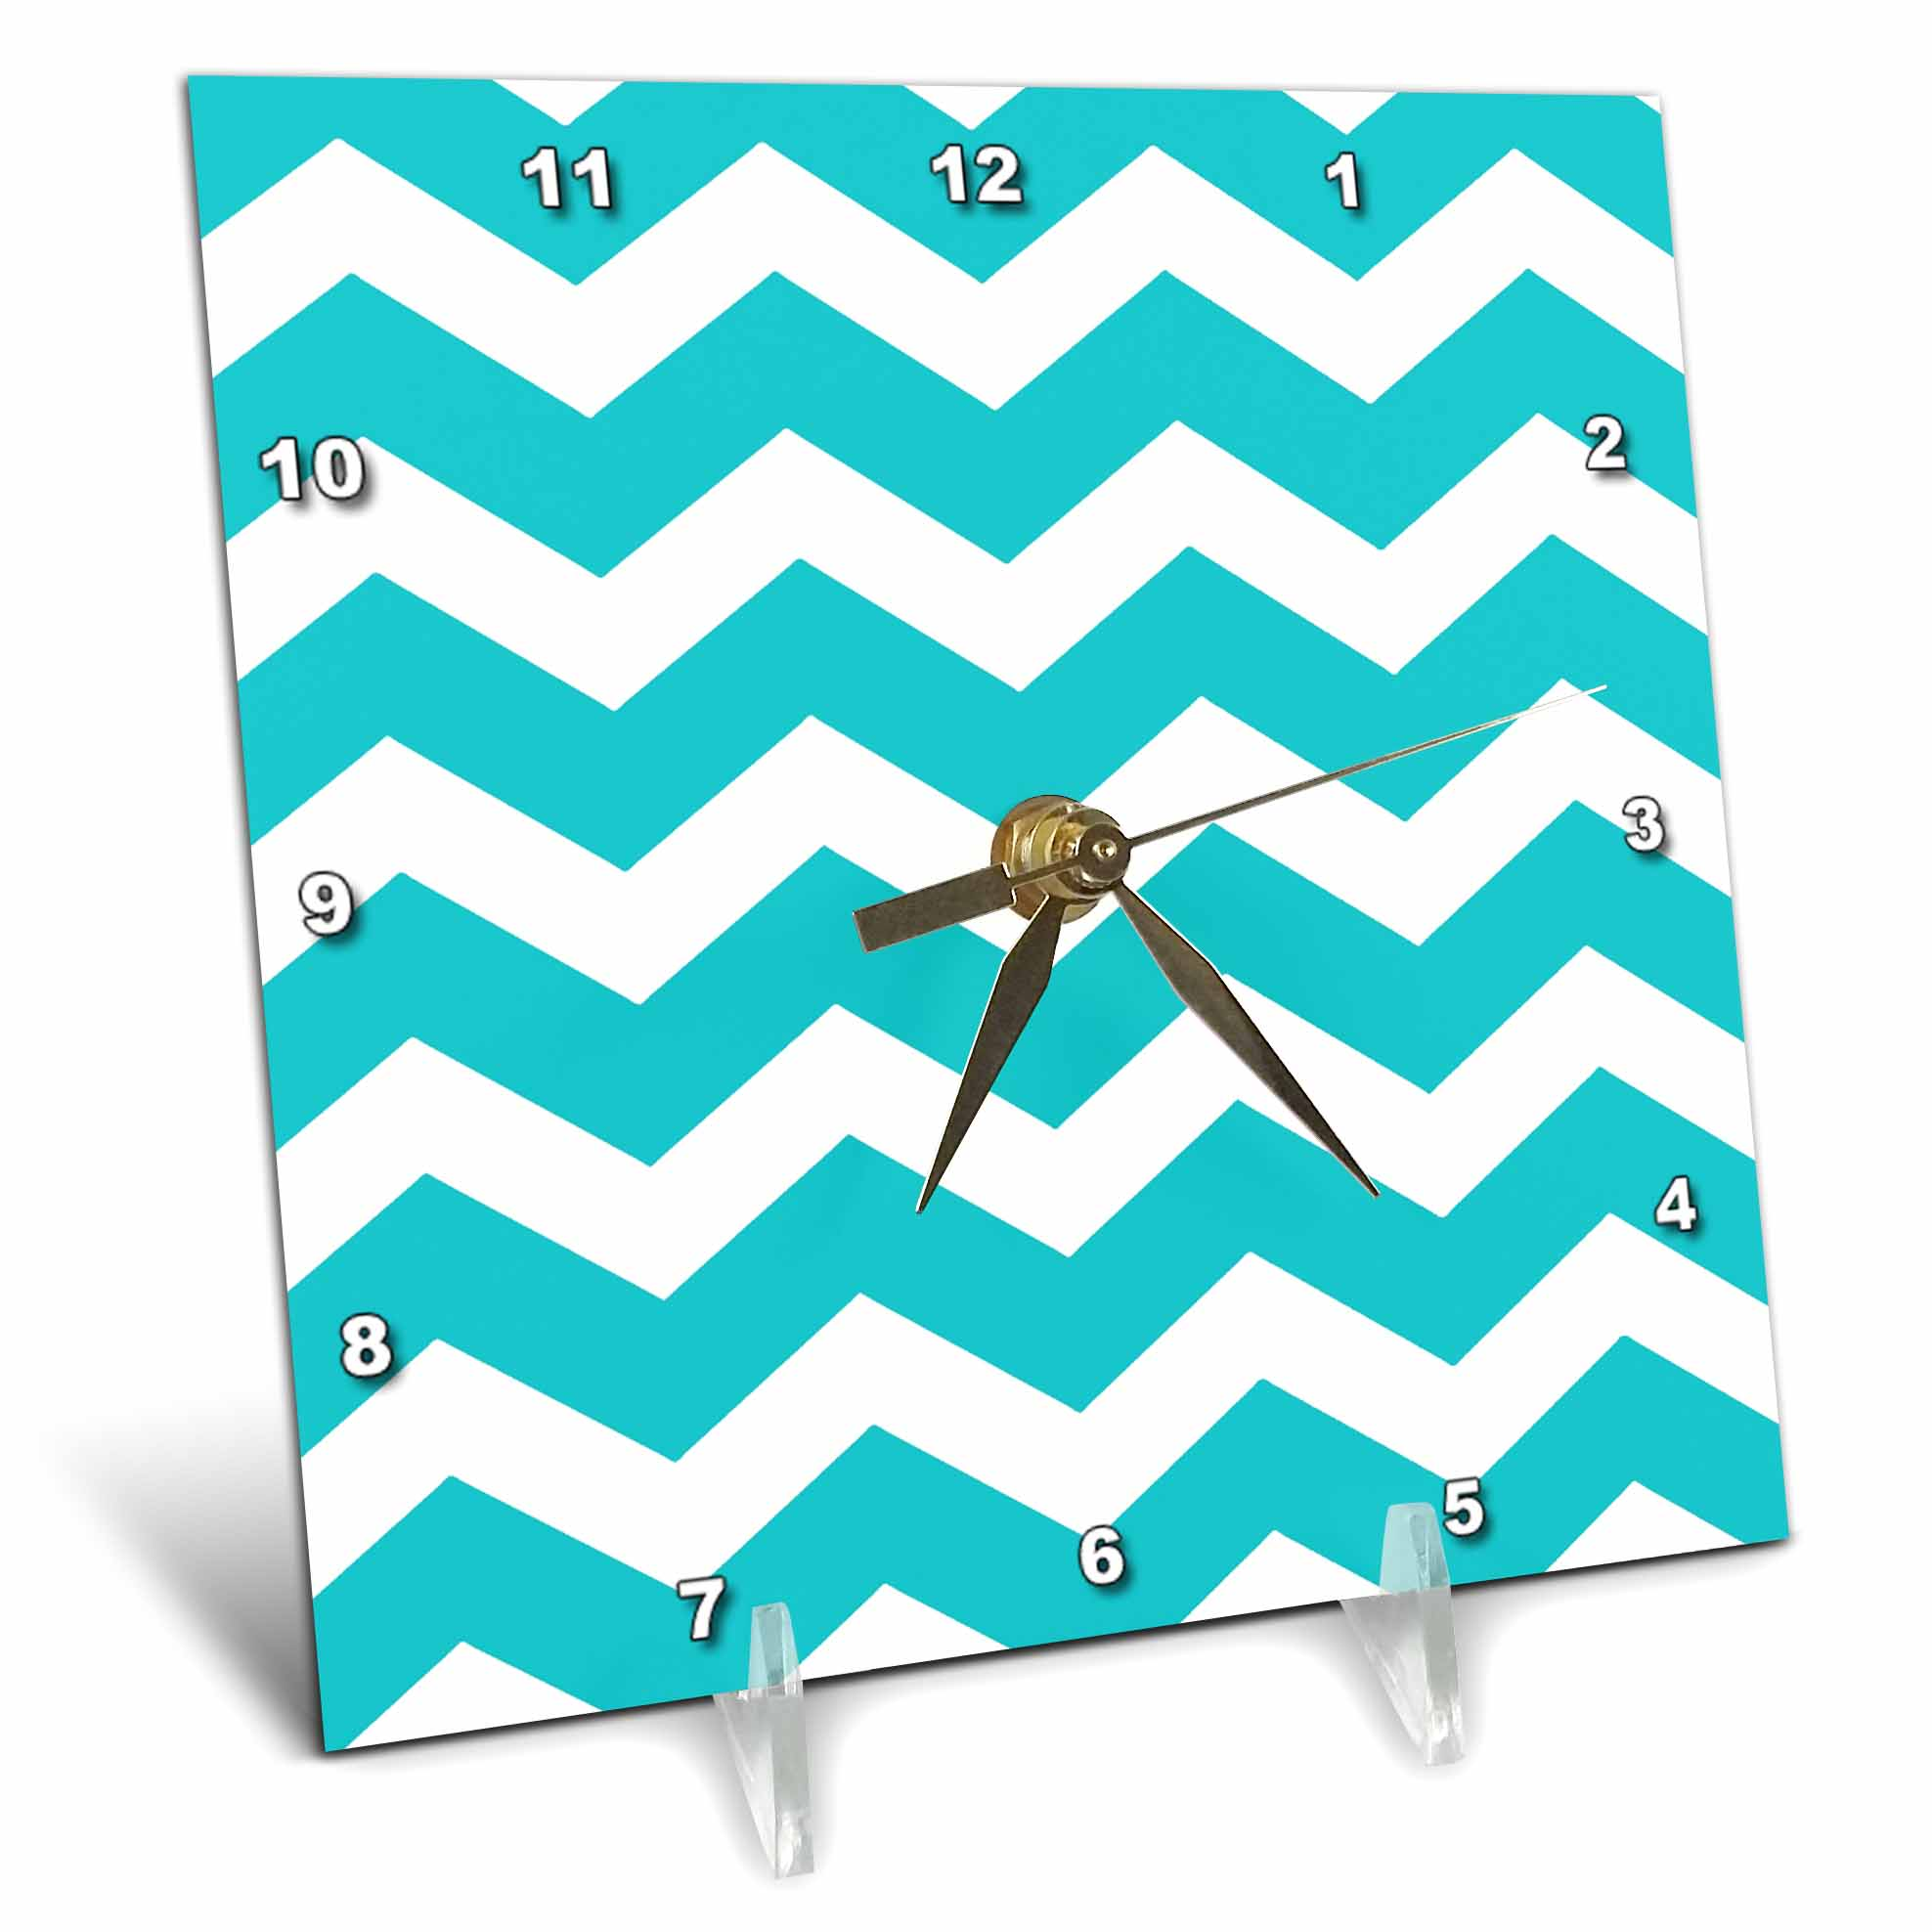 3dRose Turquoise Chevron zig zag pattern teal aqua blue stylish zigzags, Desk Clock, 6 by 6-inch by 3dRose